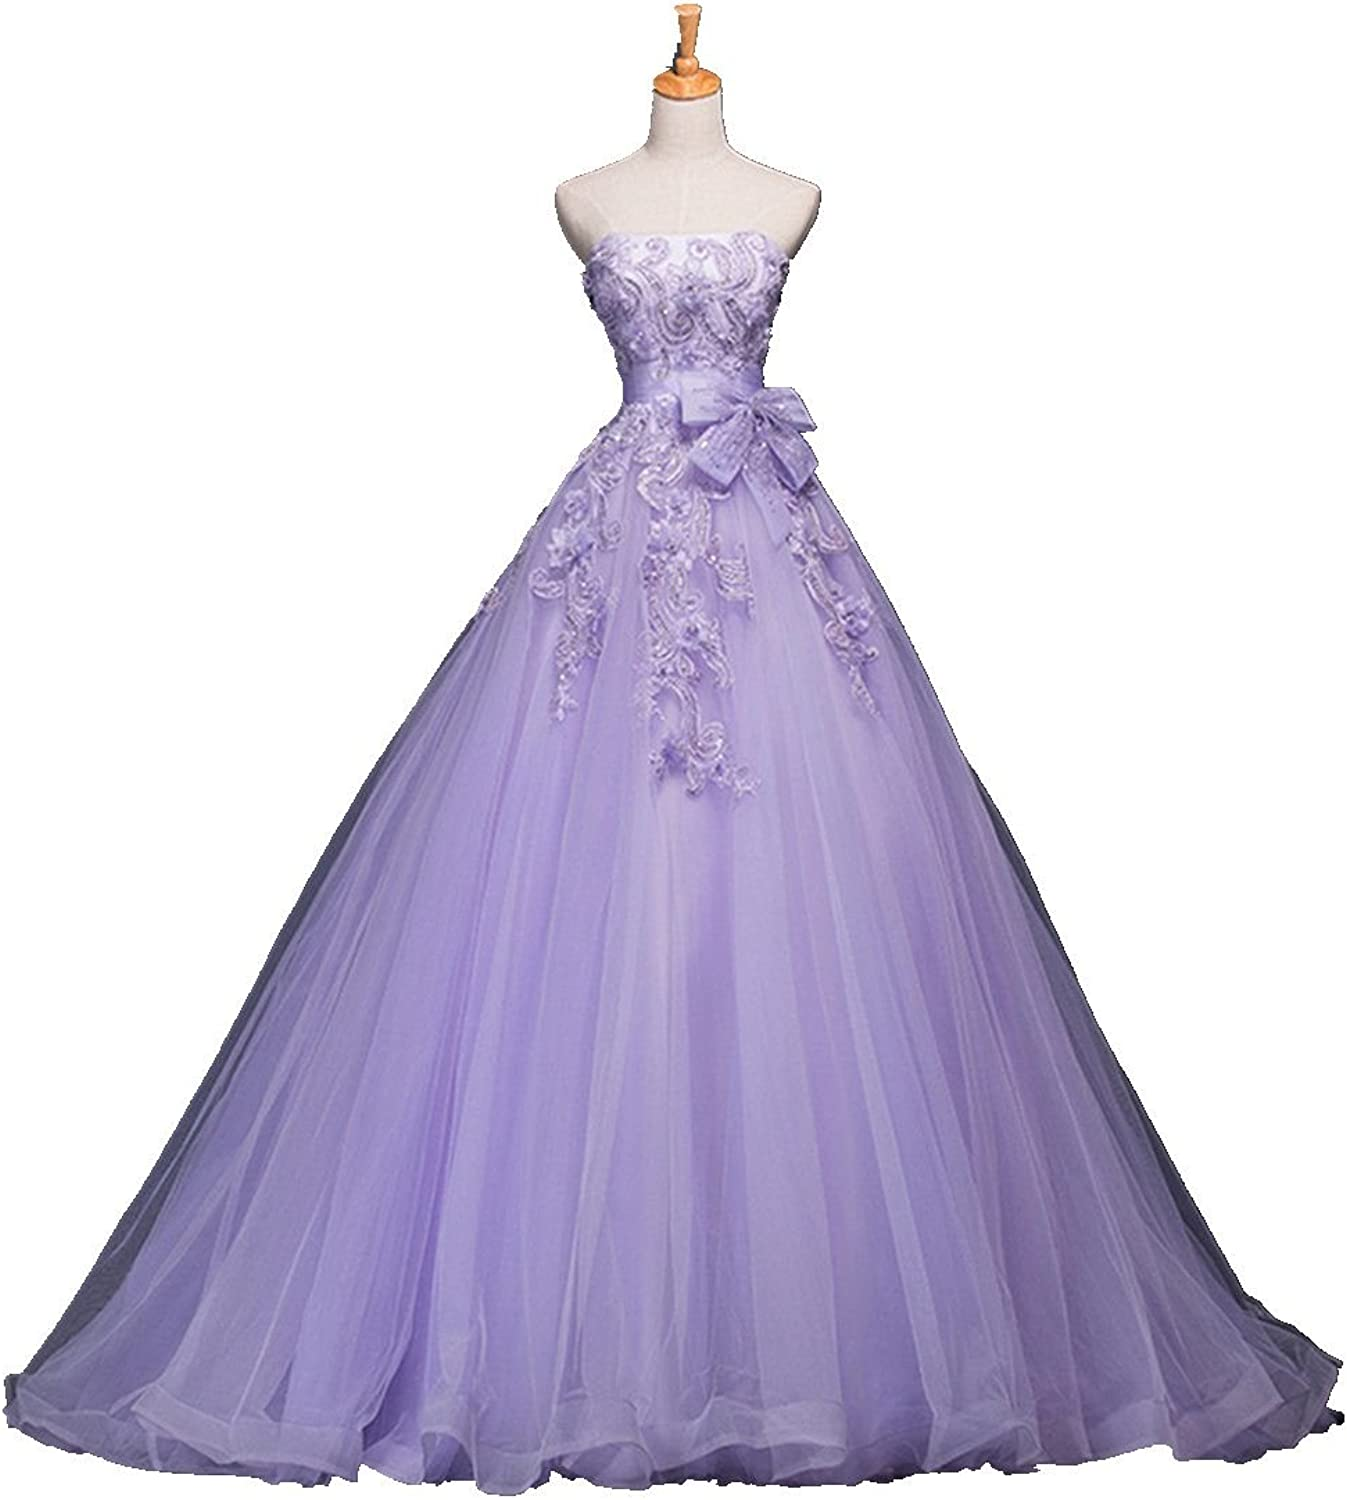 Fanciest Women's Strapless Appliques Tulle Ball Gowns Quinceanera Dresses for Prom Lavender